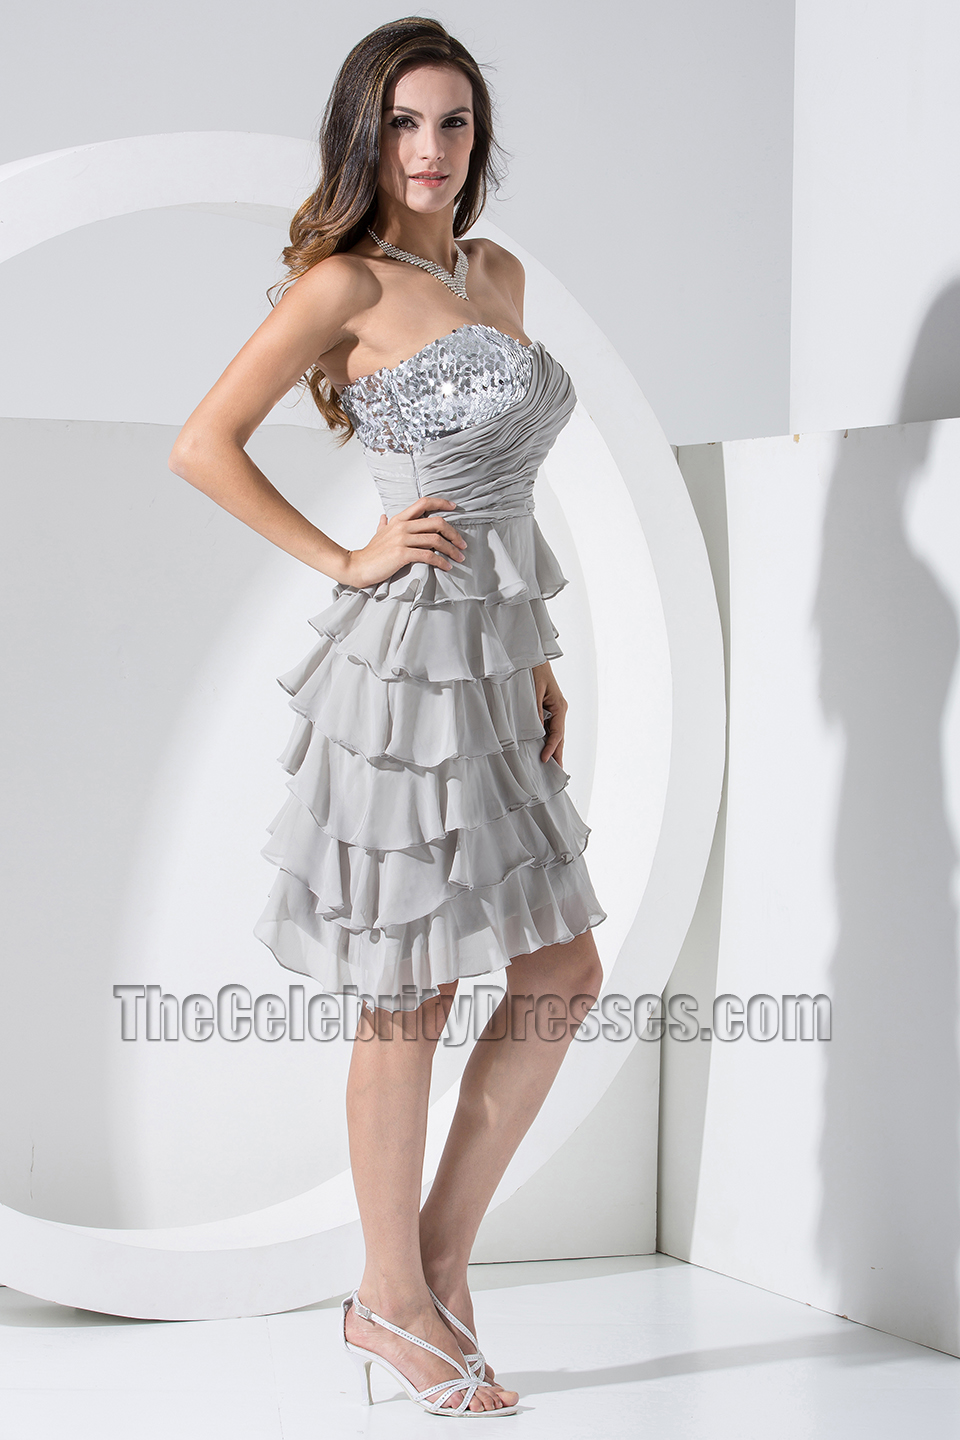 New style silver chiffon strapless cocktail dress party dresses new style silver chiffon strapless cocktail dress party dresses thecelebritydresses ombrellifo Choice Image